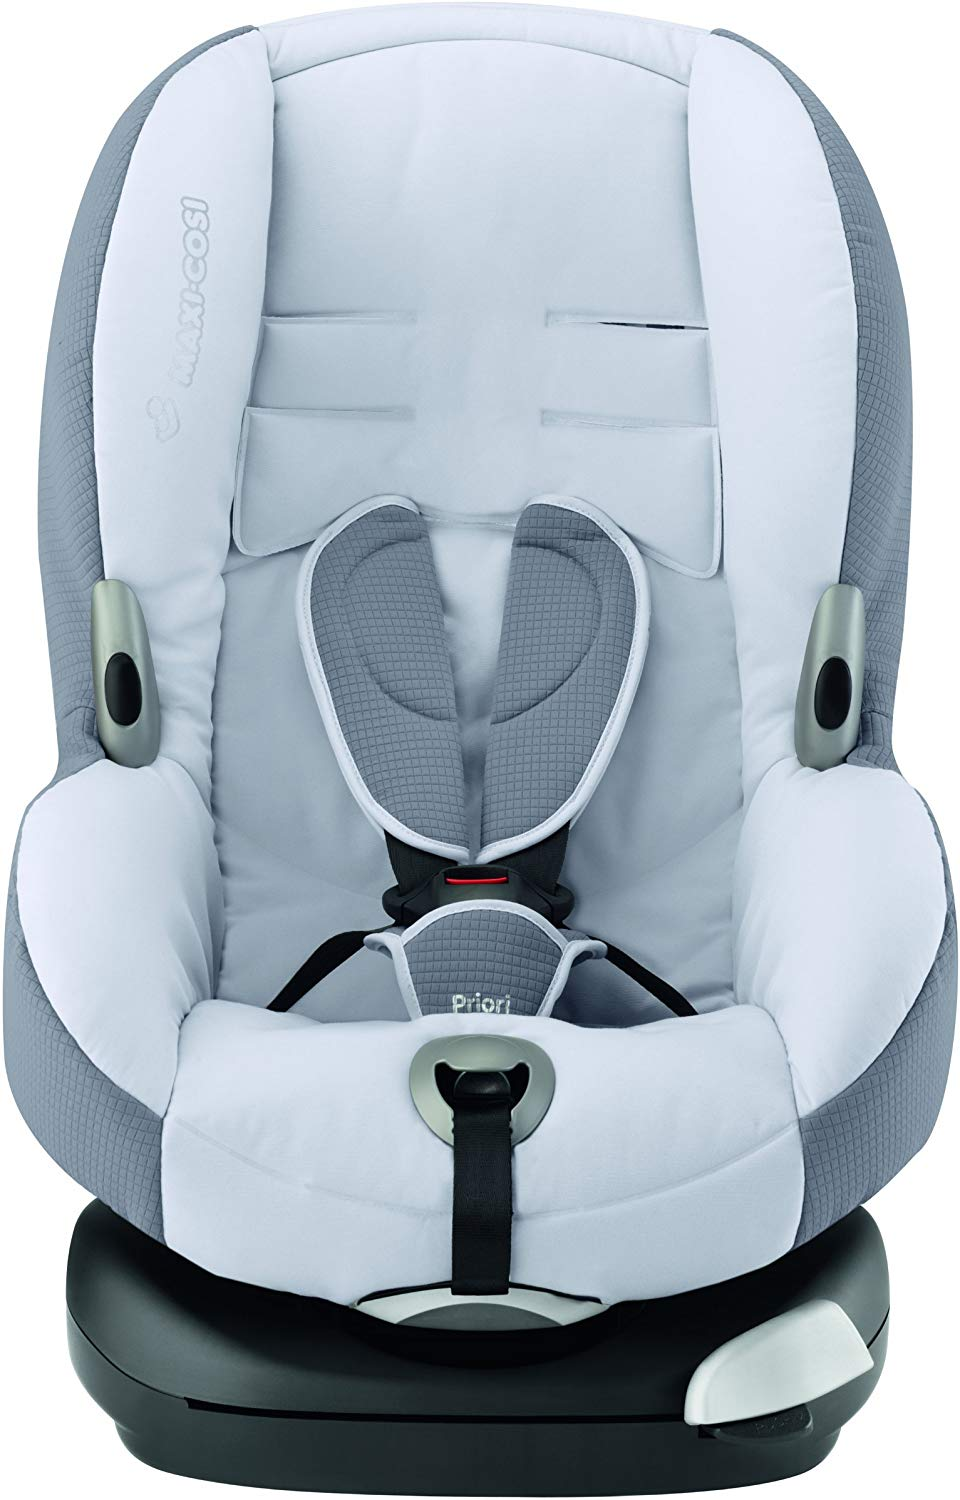 Автокресло Maxi-Cosi Priori XP Steel Grey